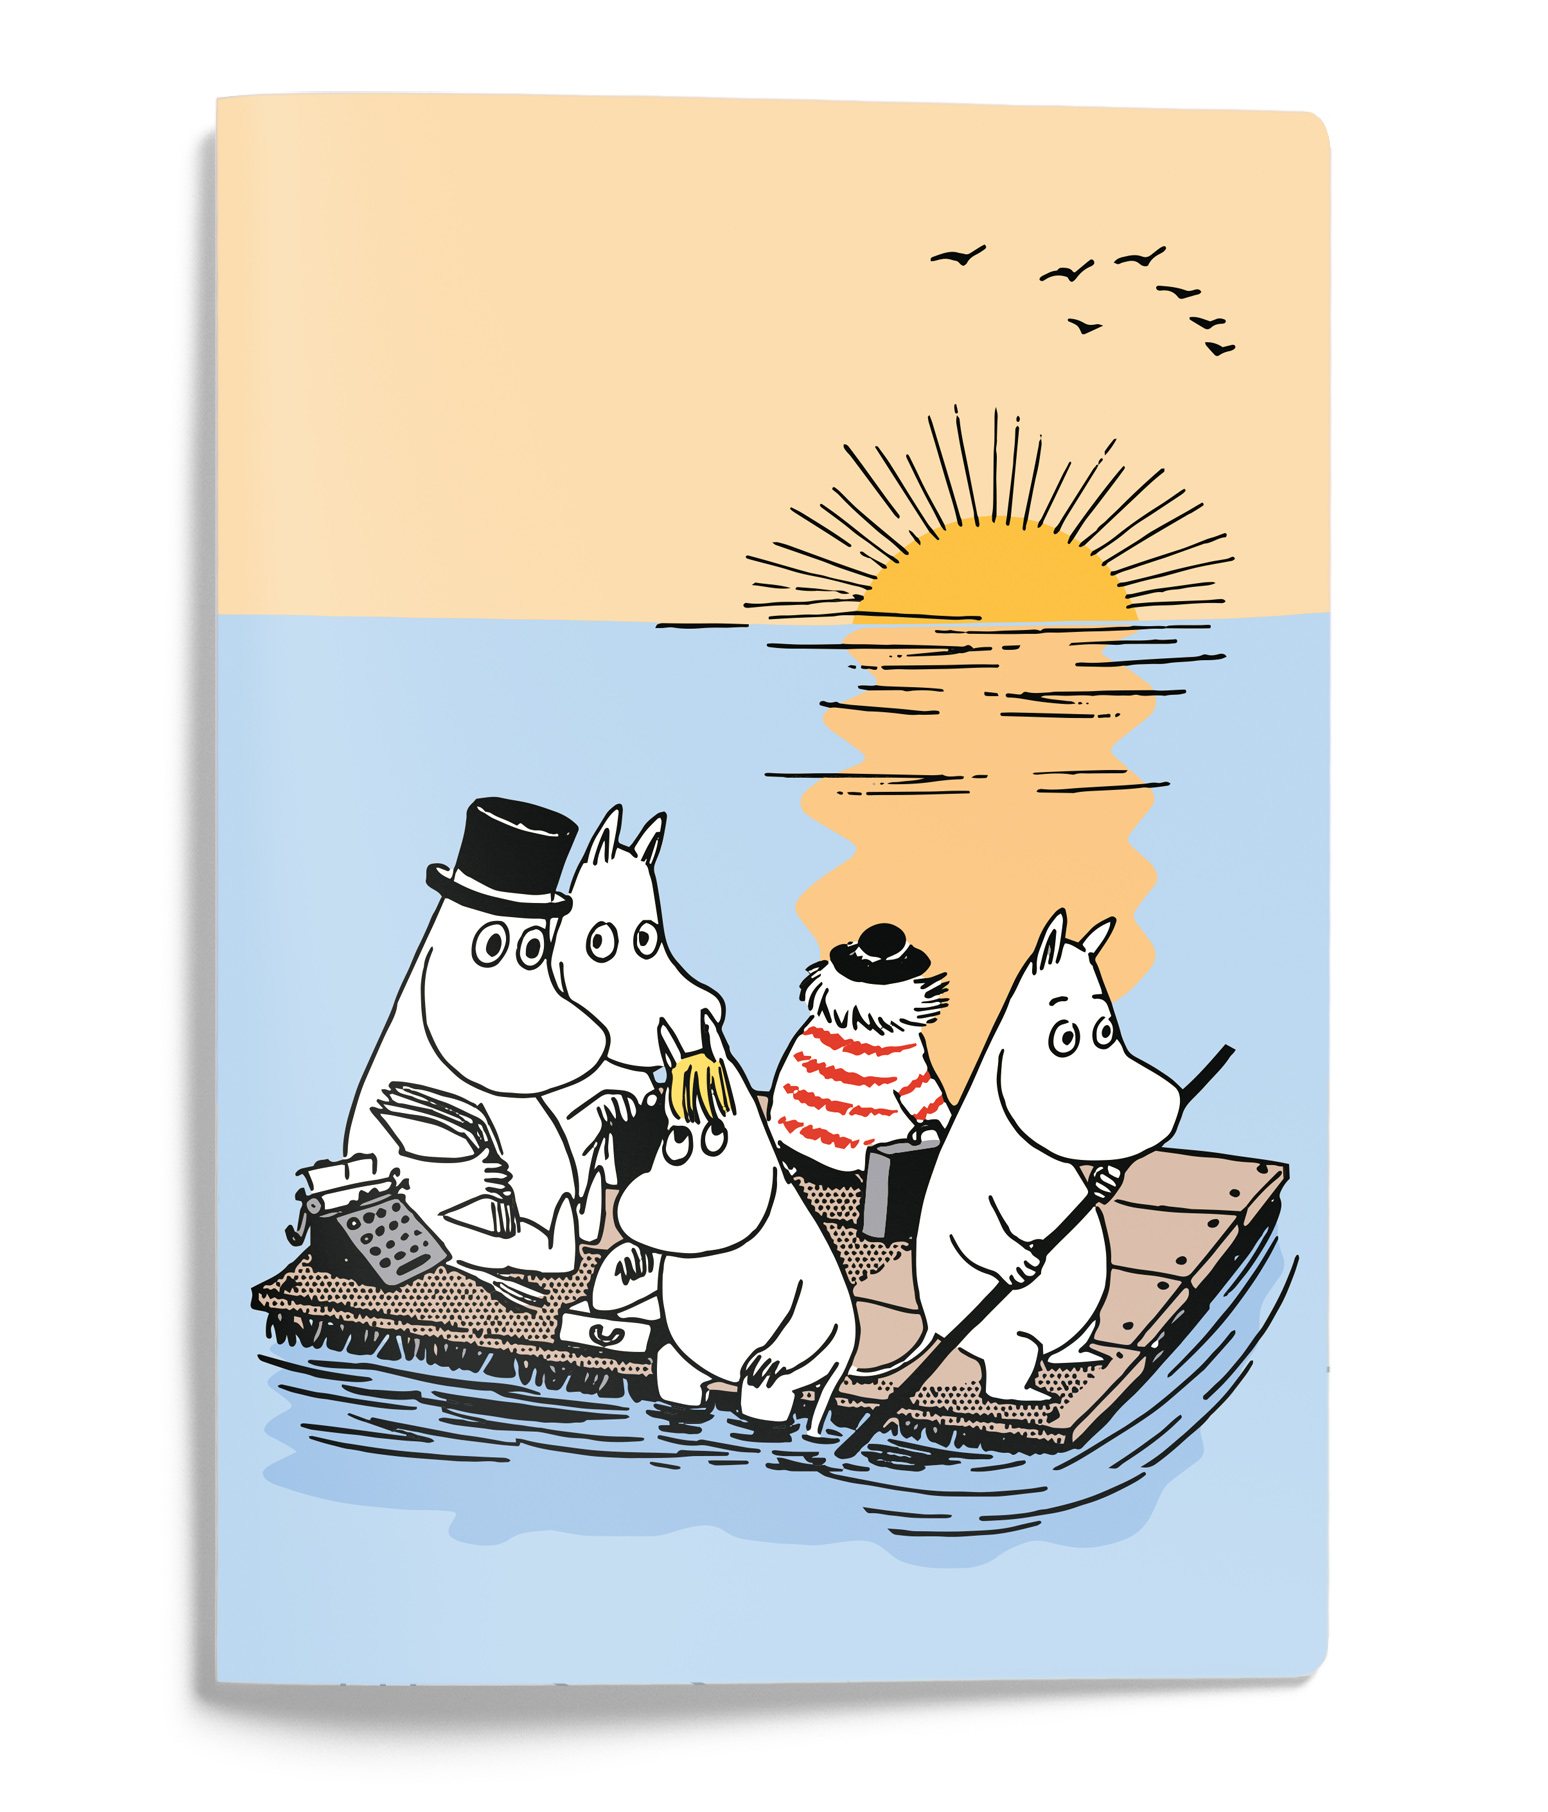 Putinki Softcover Notebook A5 Moomins on a raft